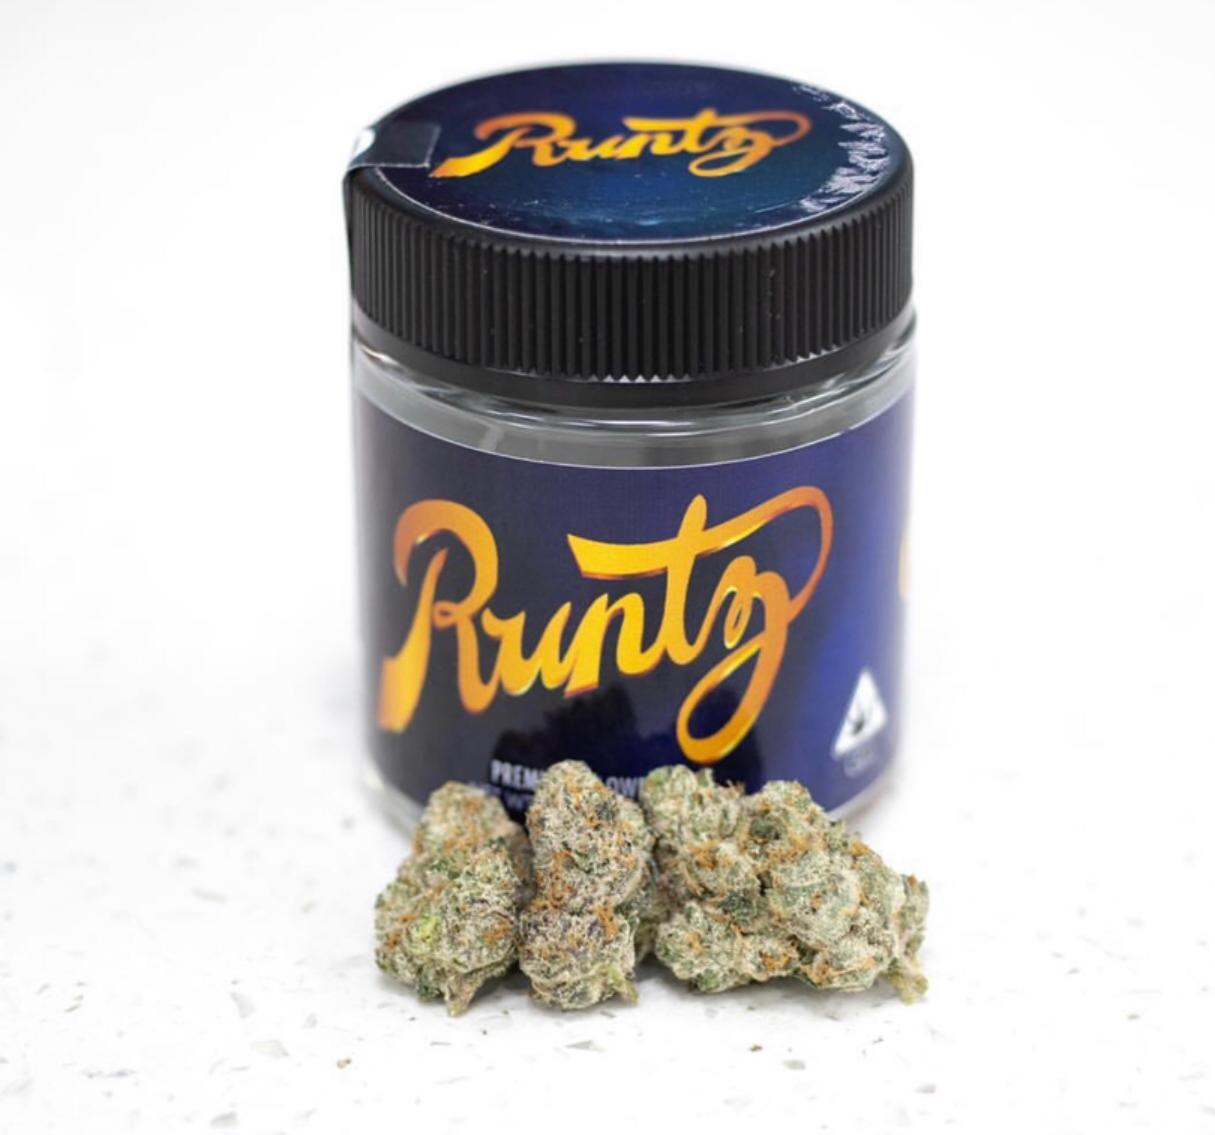 buy runtz online, Runtz strain for sale, order original runtz online, buy runtz carts in USA, Cookies runtz for sale, purple runtz for sale